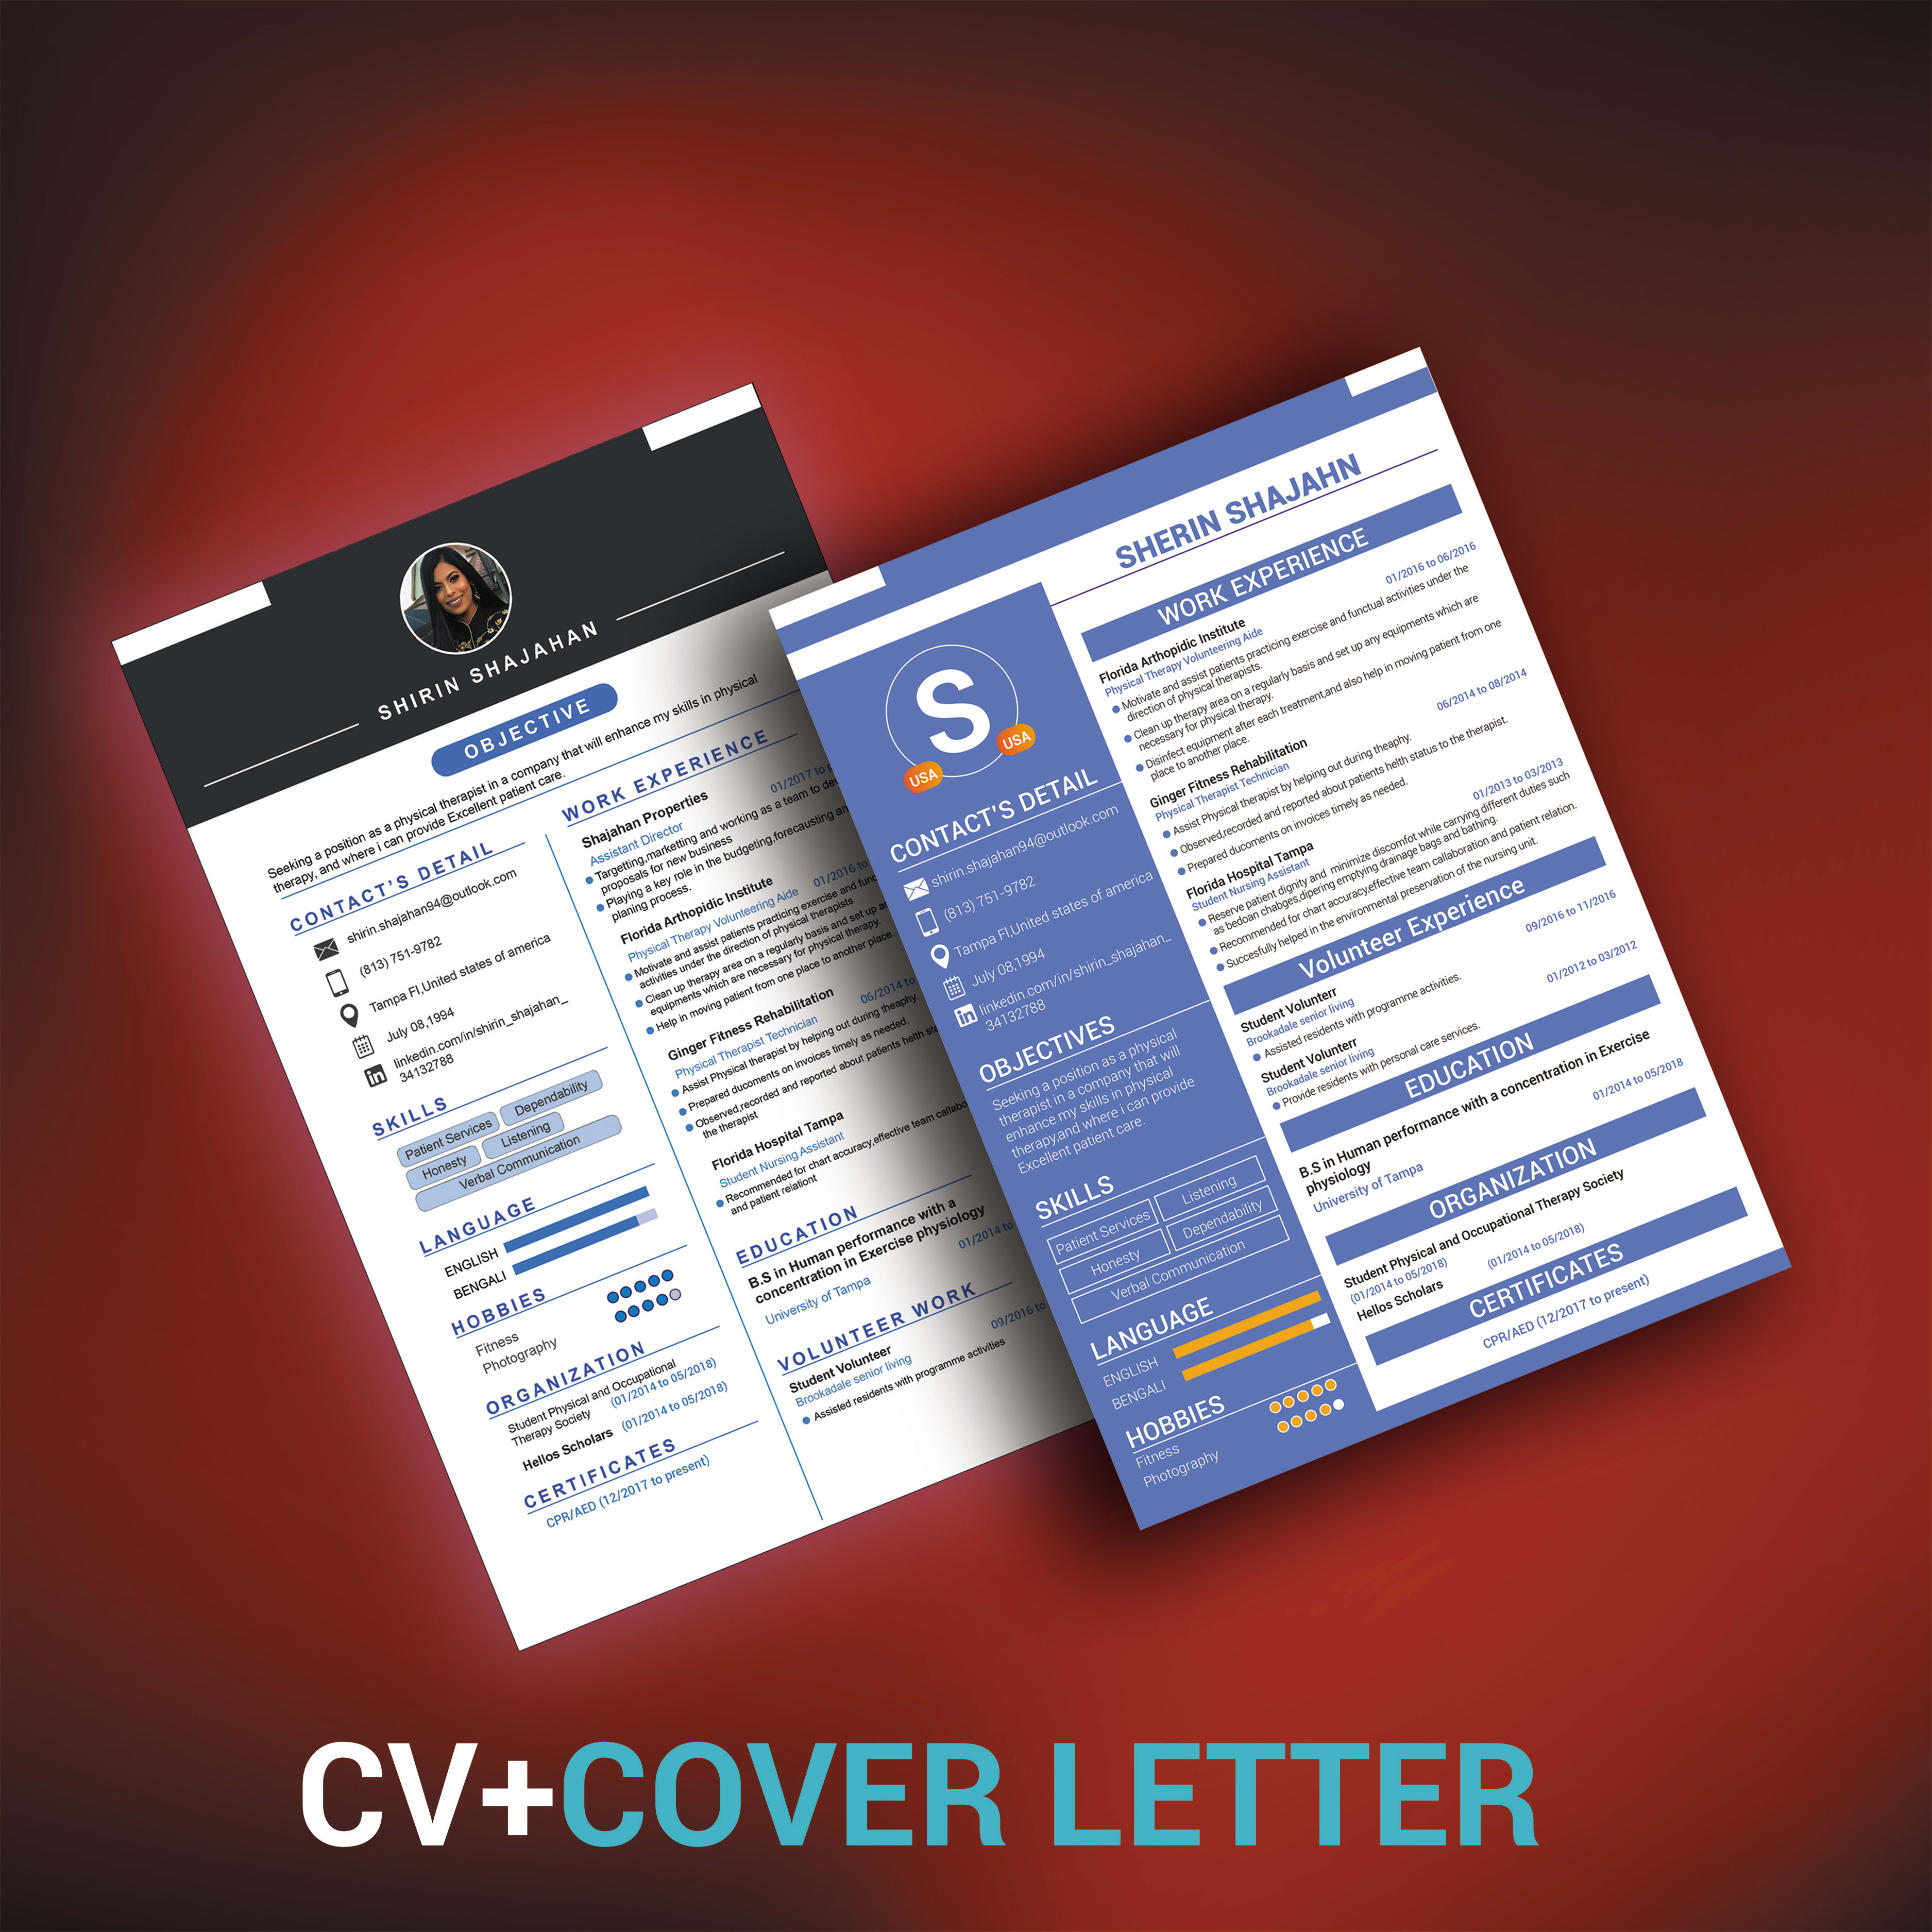 design,review rewrite your resume or cover letter